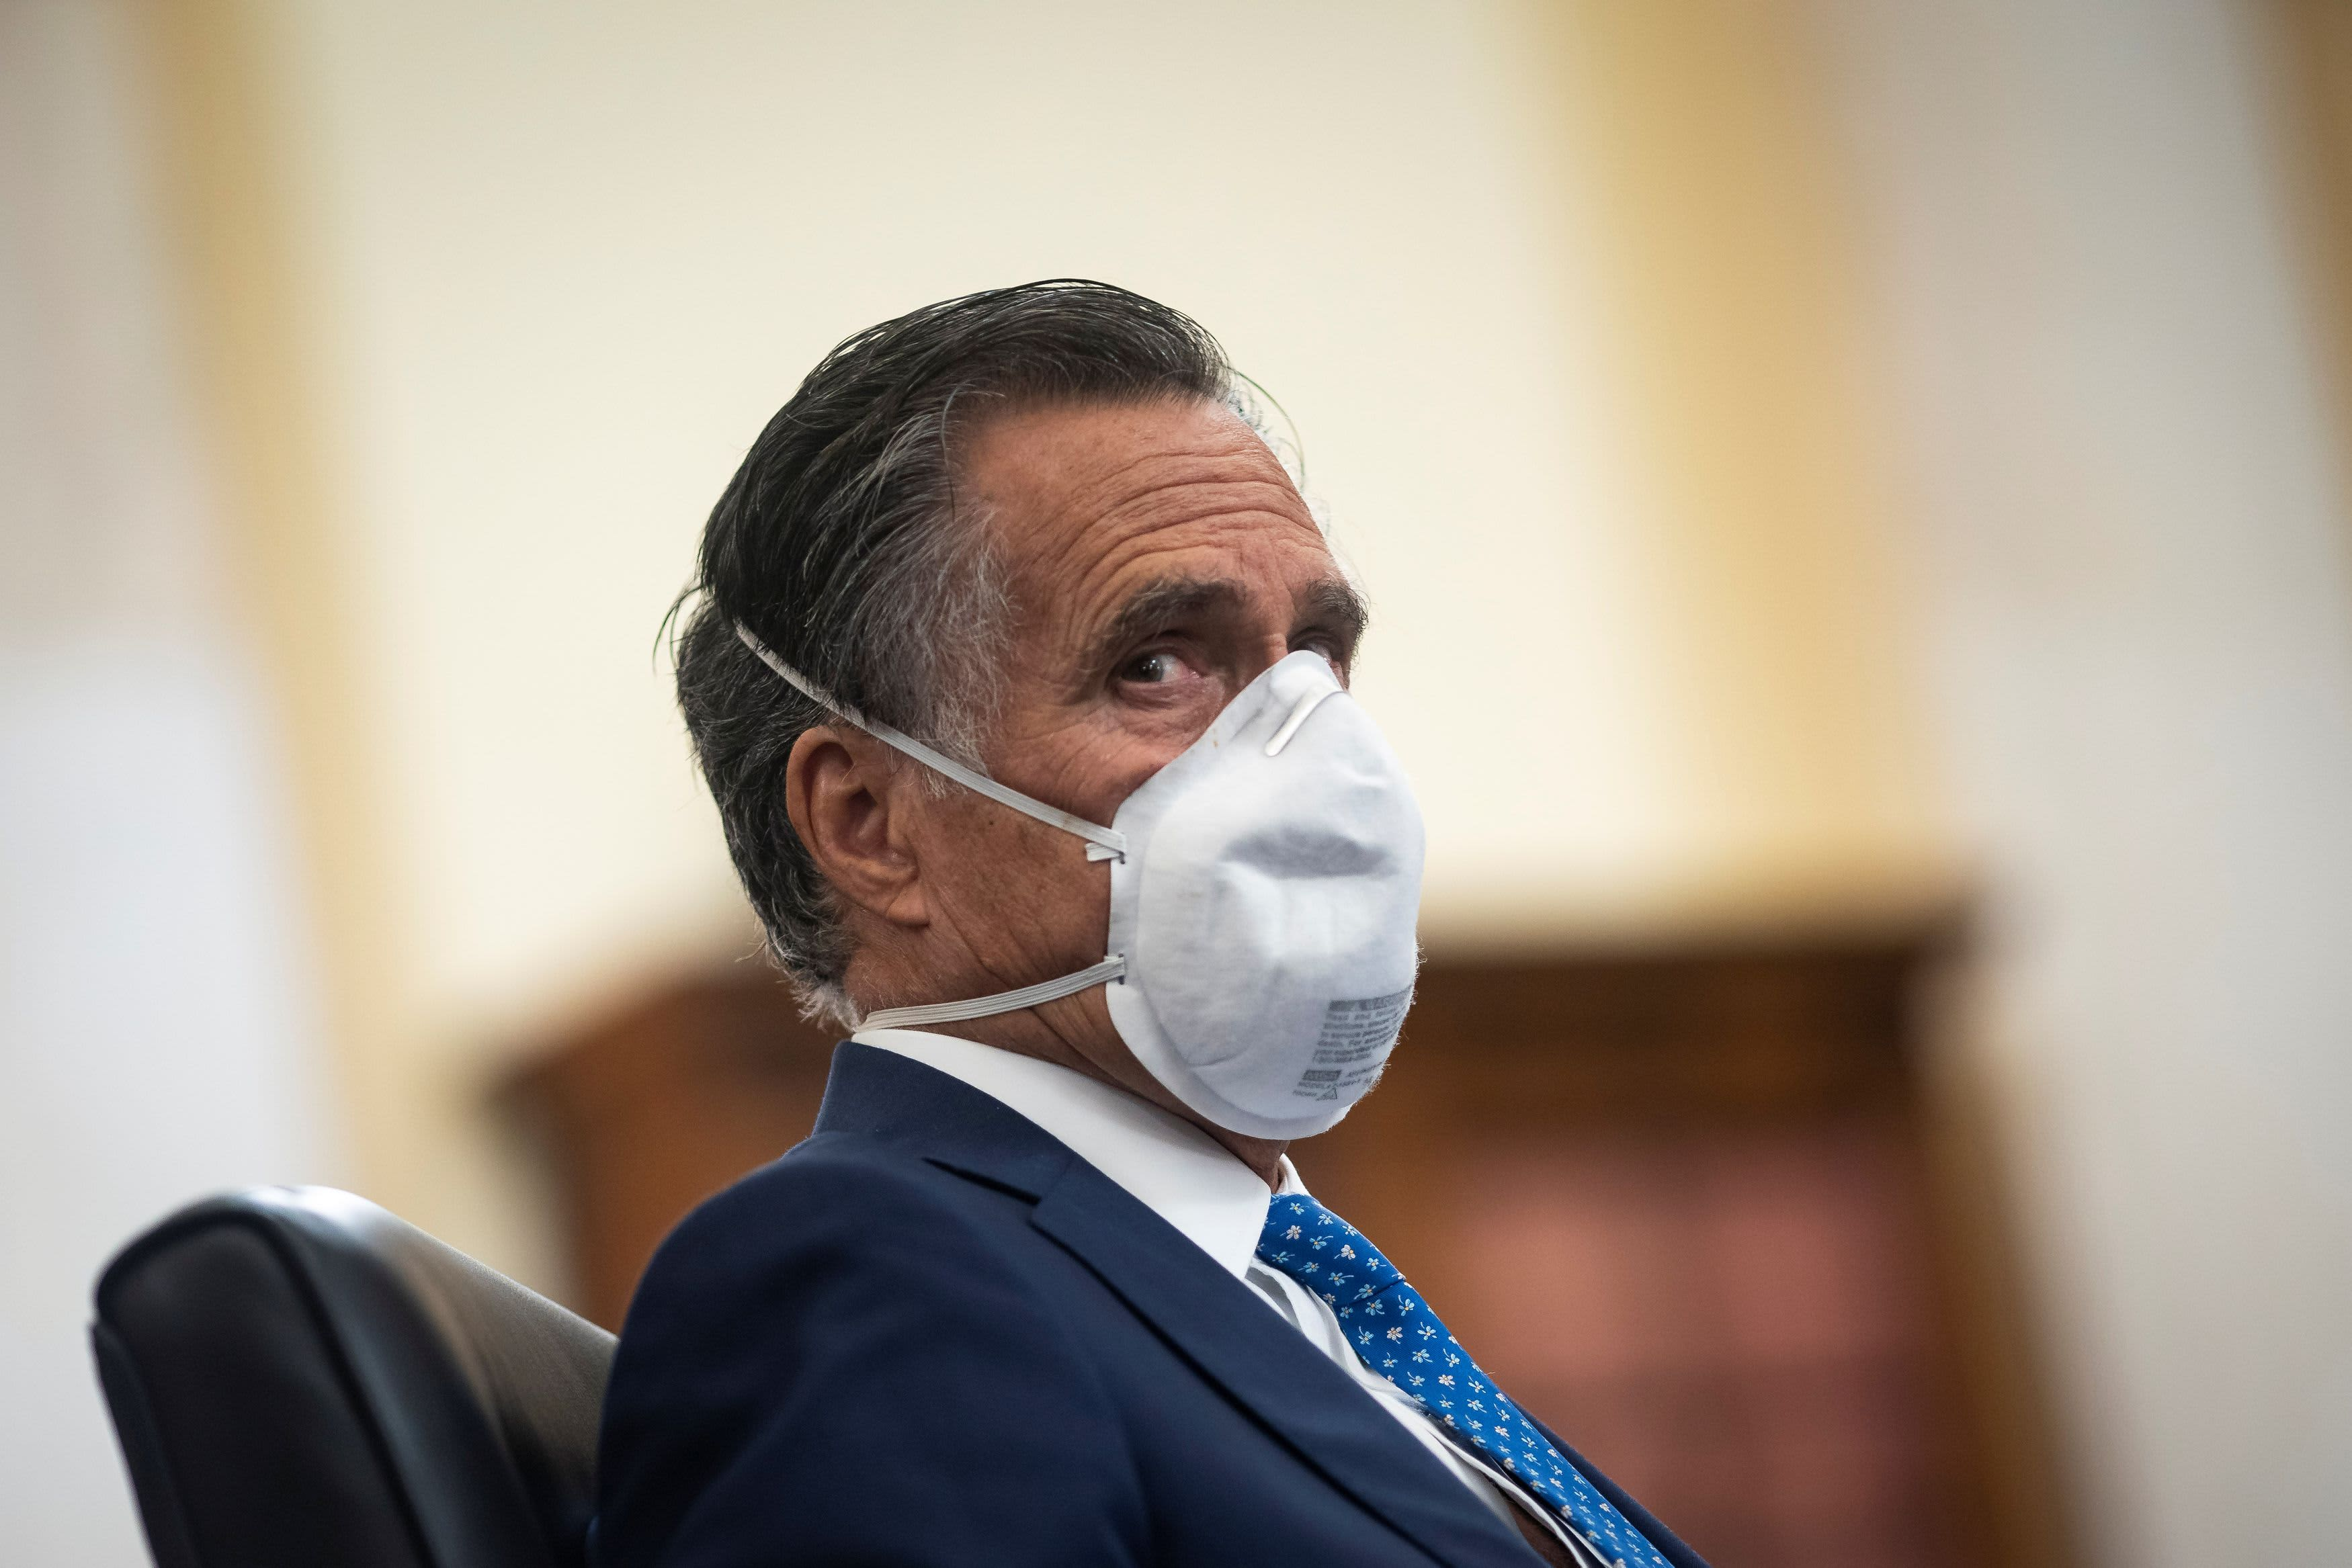 Romney slams Trump administration over U.S. coronavirus death toll — 'There's no way to spin that'